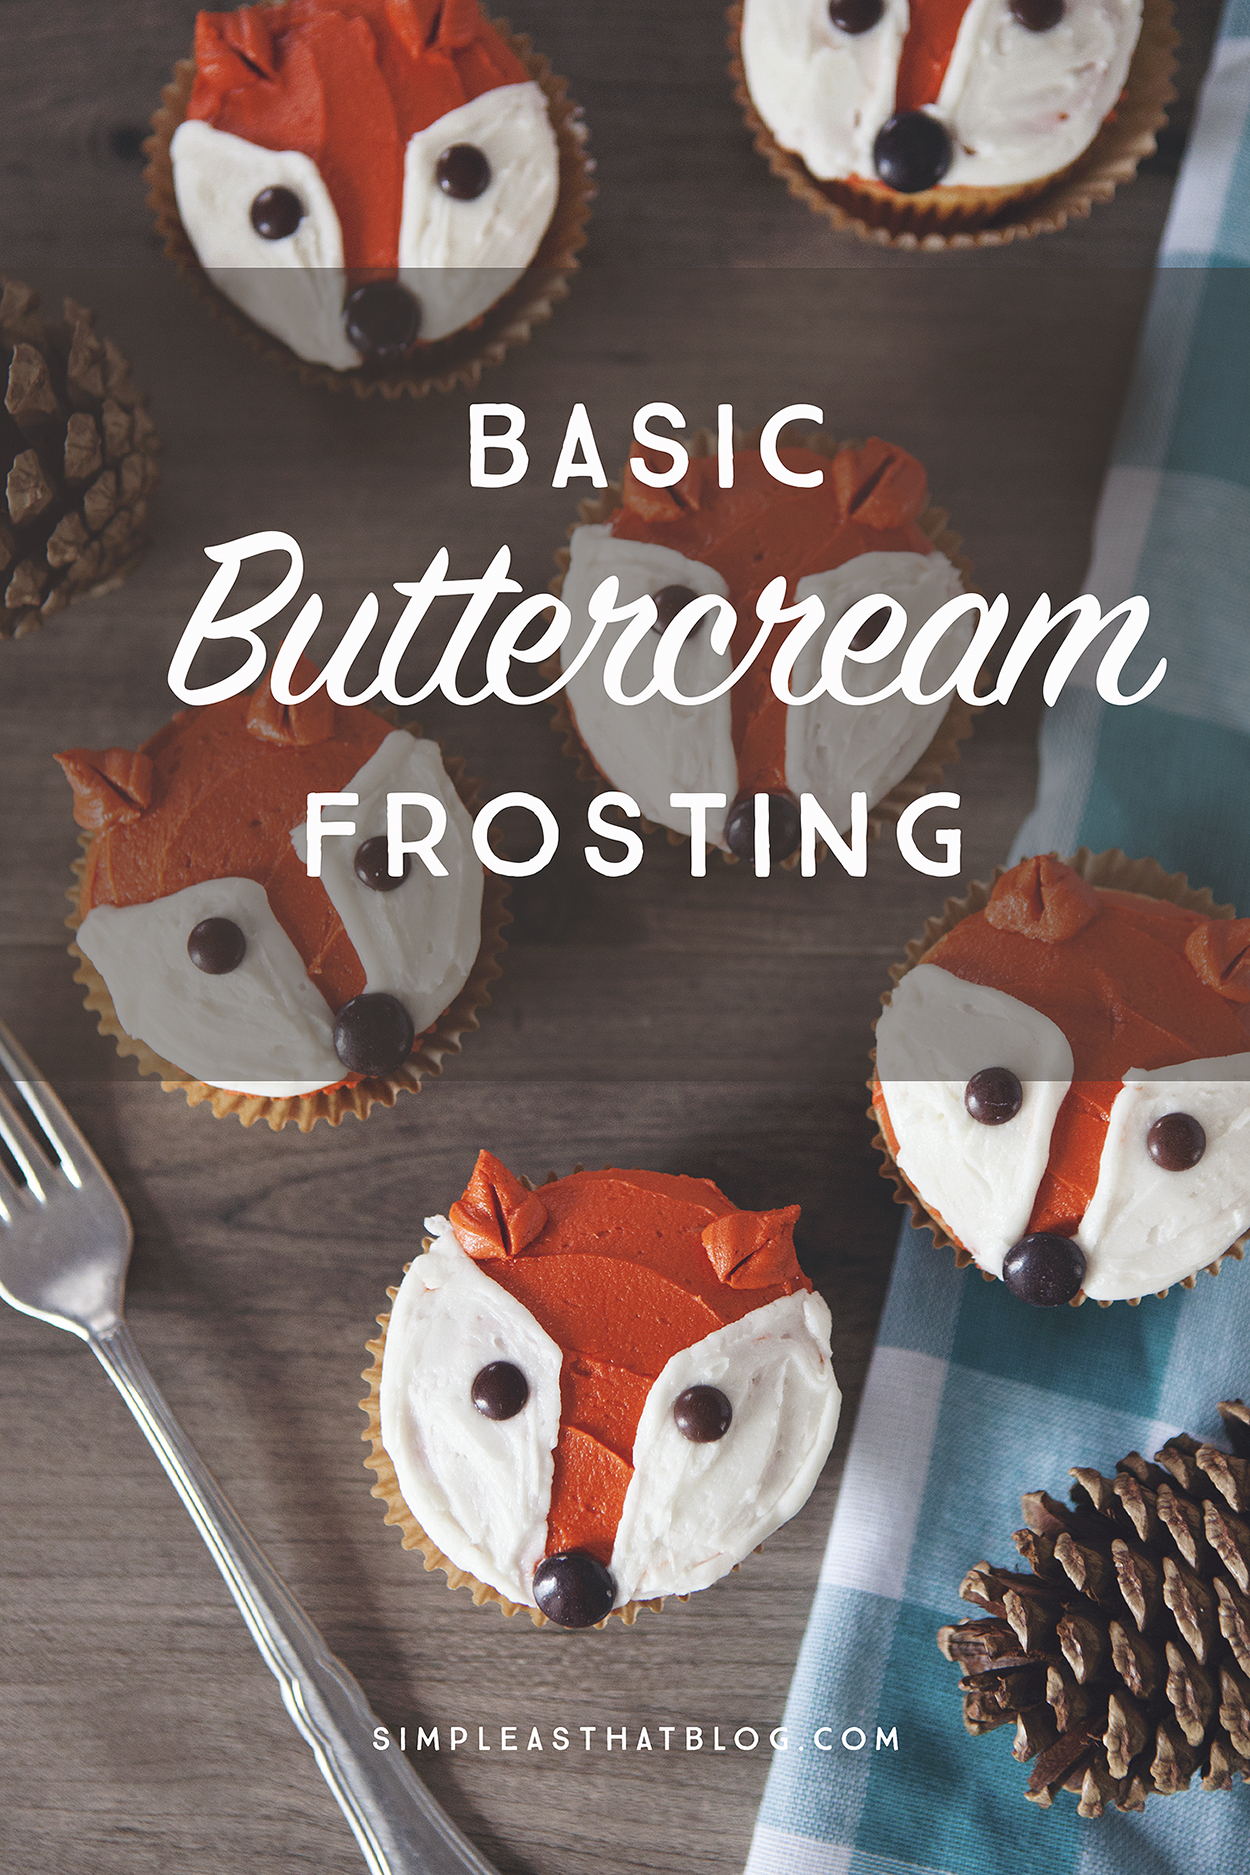 This Basic Buttercream Frosting Recipe is the only frosting recipe you'll ever need! It's light, fluffy and turns out perfectly every time!